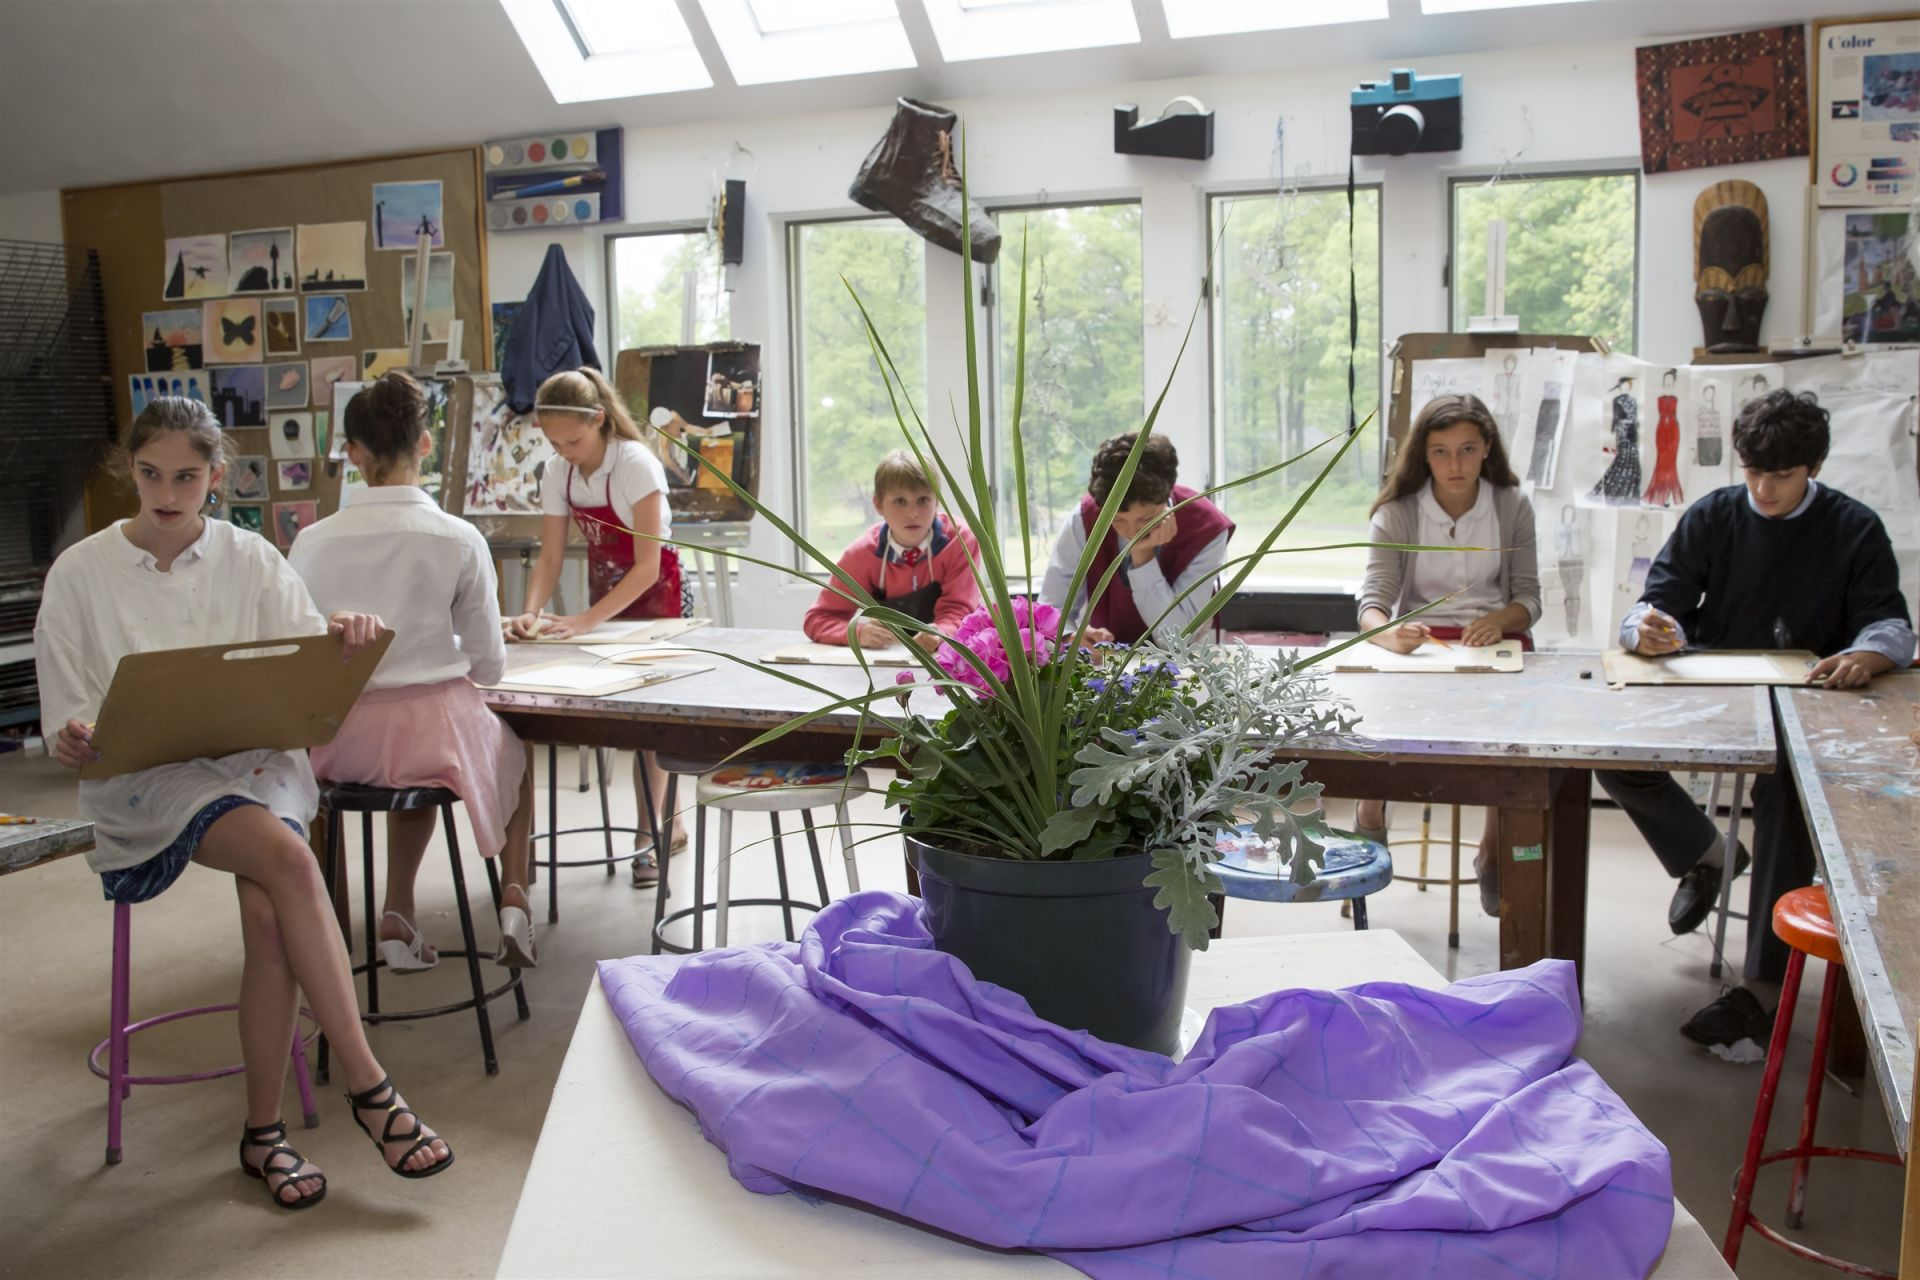 Art is a regular part of every Upper Schooler's schedule, and in addition to foundational courses in seventh and eighth grades, students have access to a range of elective options that include ceramics, painting, and printmaking.